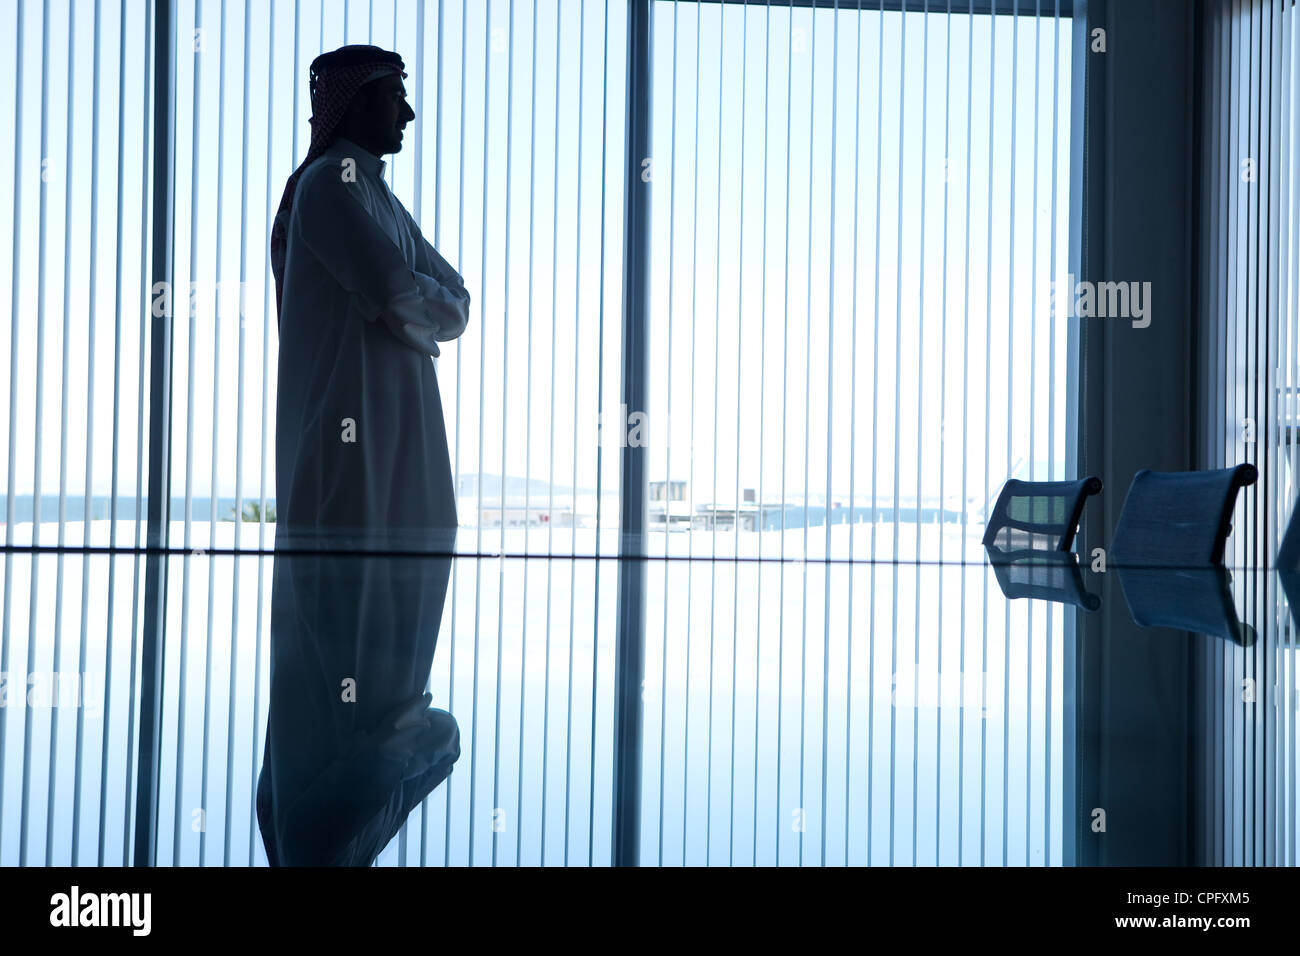 Silhouette of an arab businessman with arms crossed standing in a conference room. - Stock Image